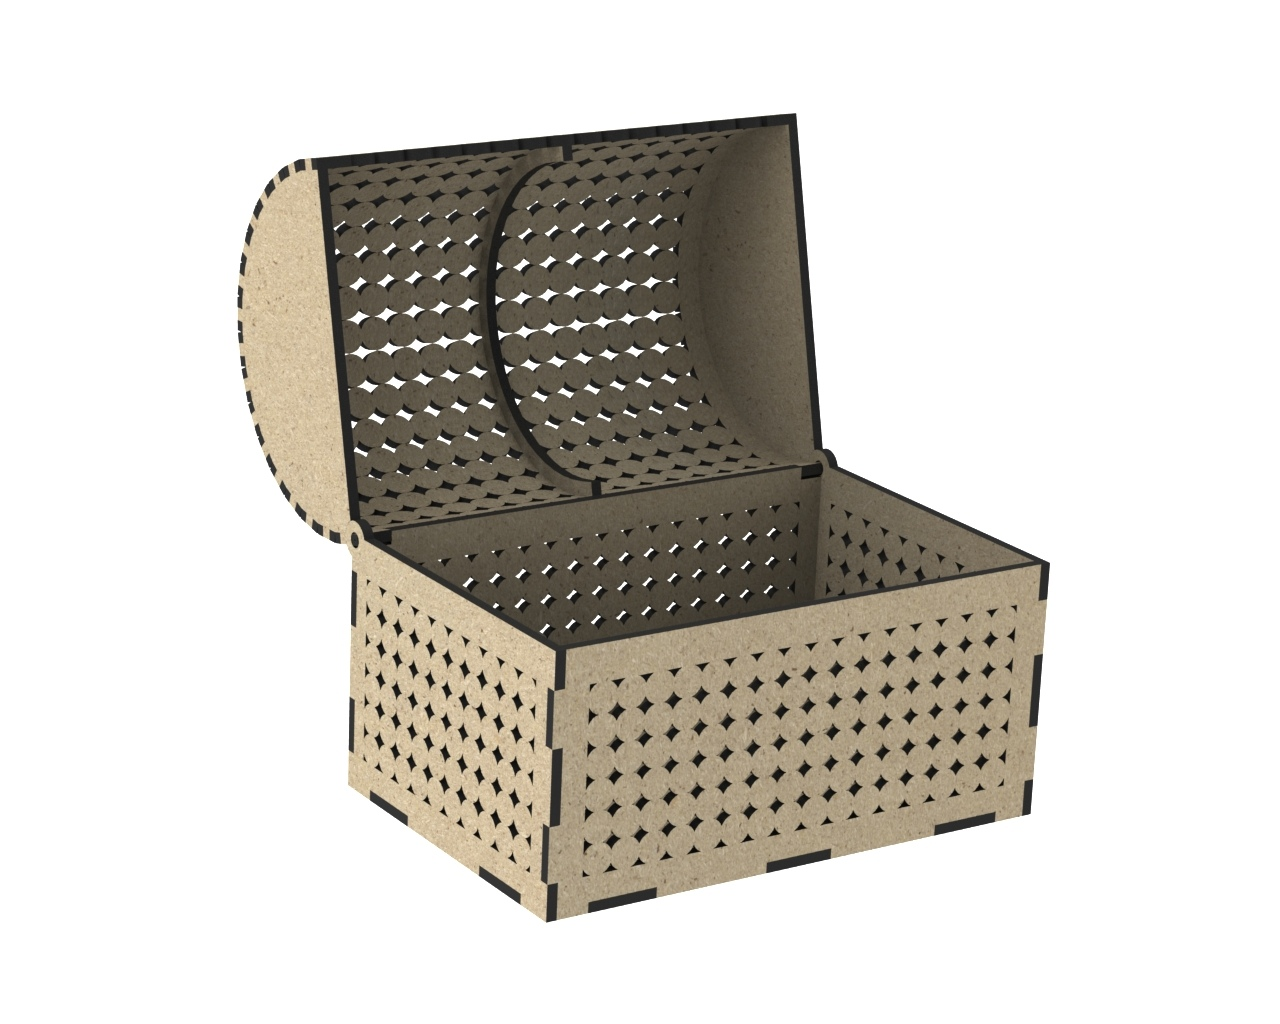 Laser Cut Wooden Chest With Decorative Lid Free CDR Vectors Art